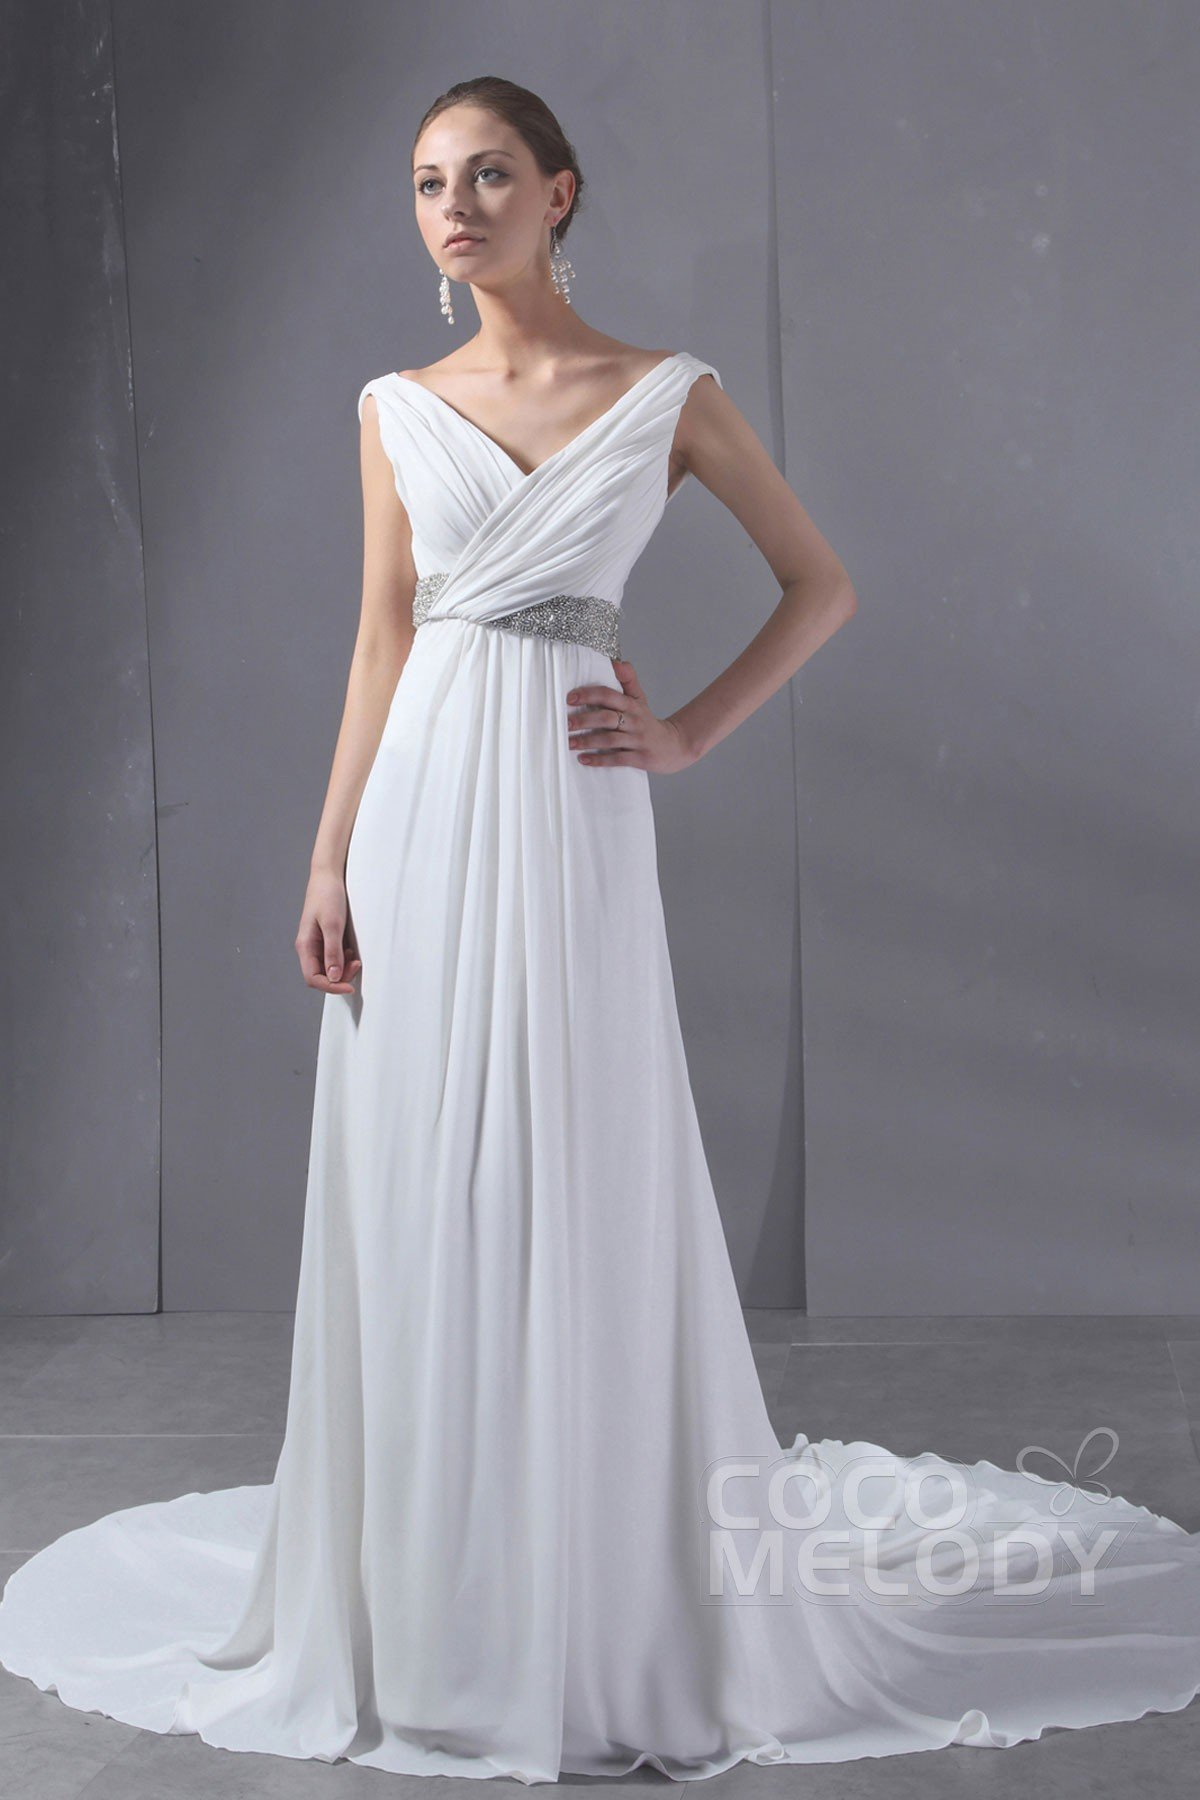 Simple Sheath Column V Neck Chapel Train Chiffon Wedding Dress Cwlt130aa